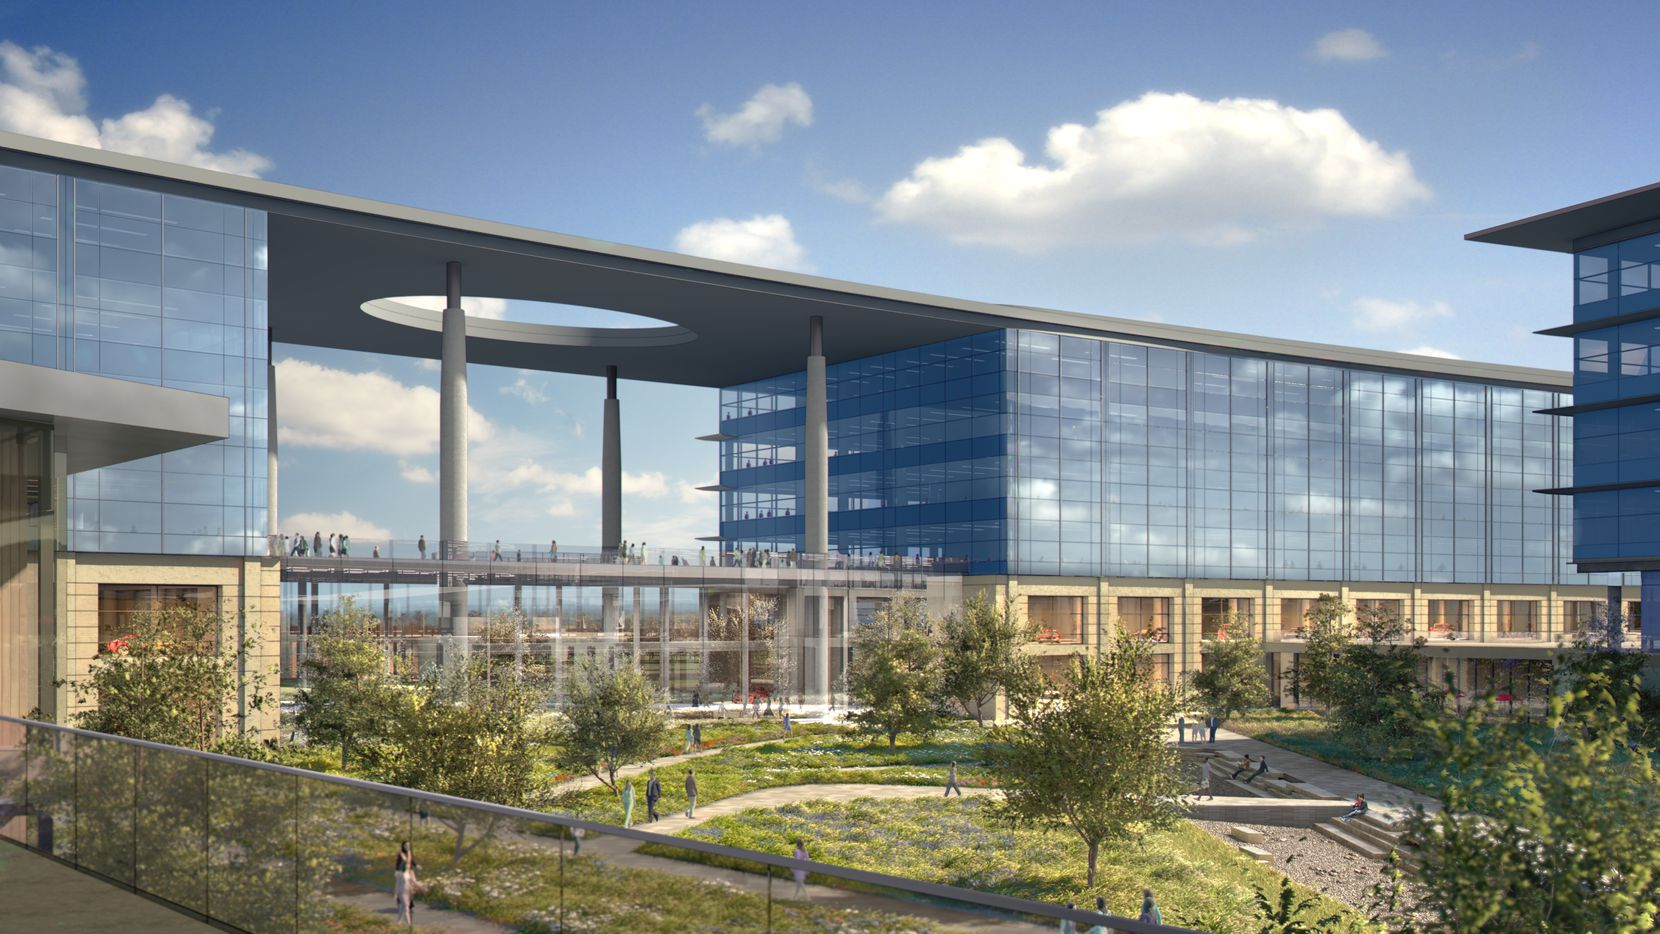 An artist's rendering of Toyota's North American headquarters campus being built in Plano.